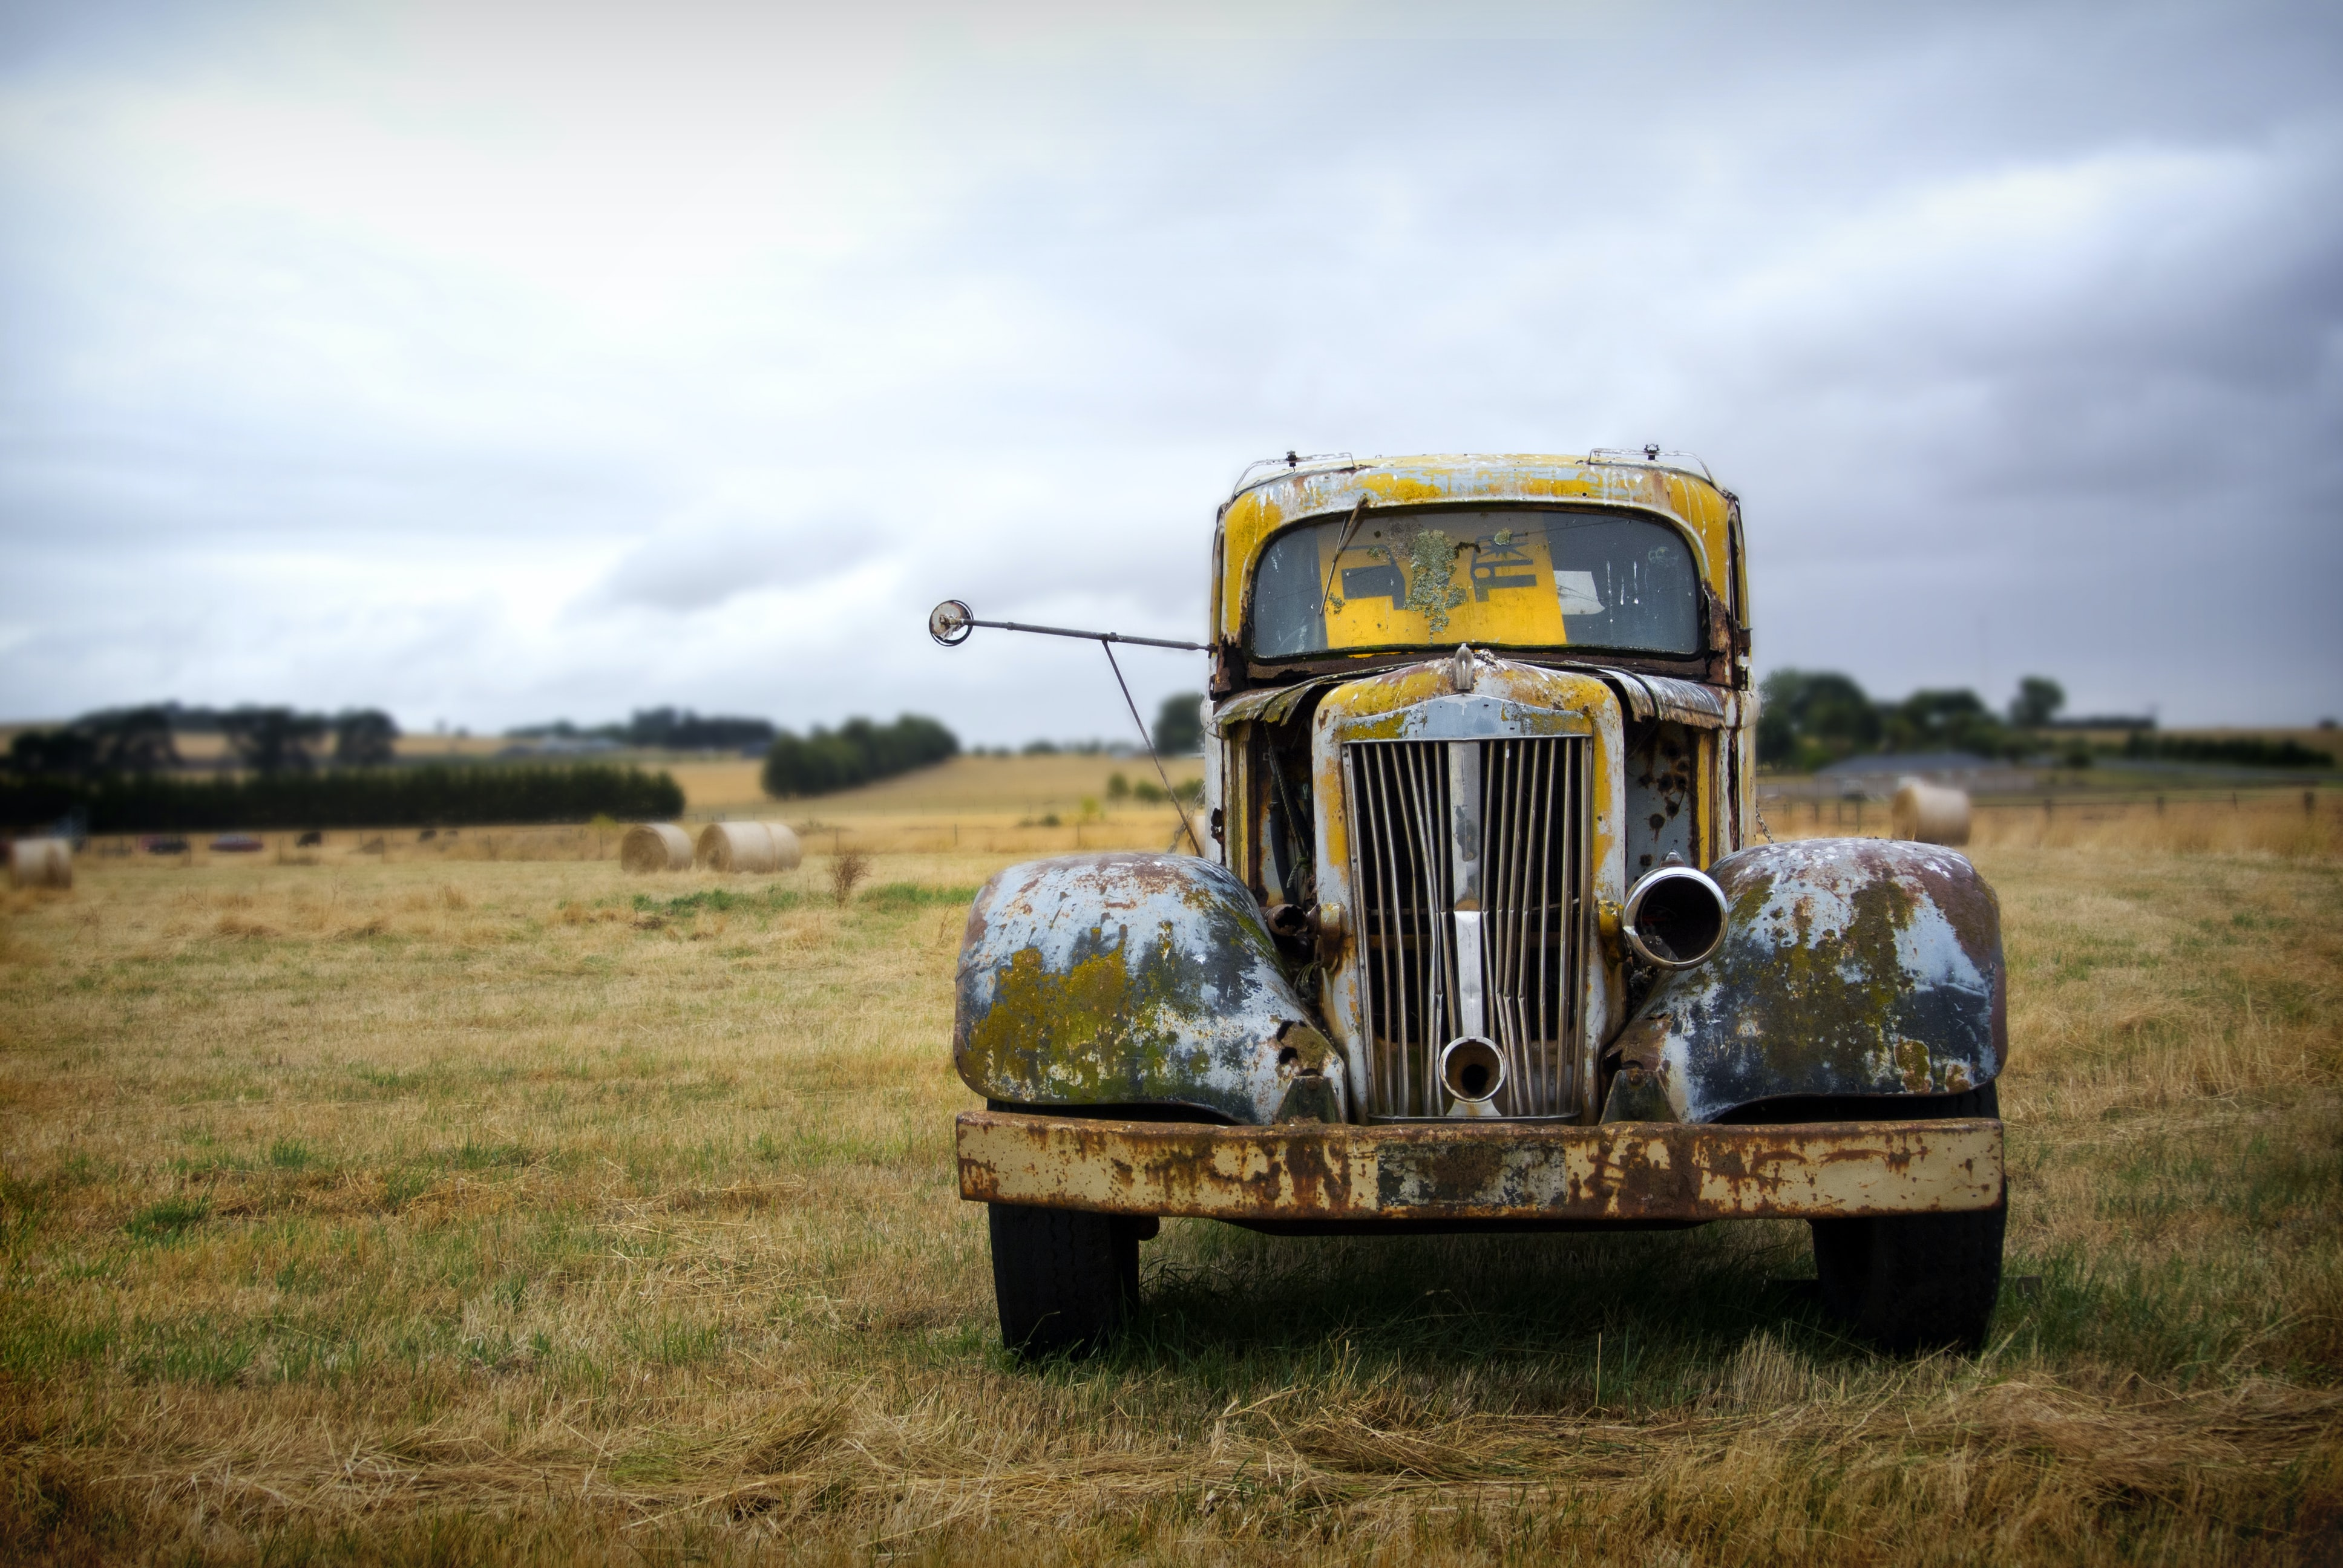 classic yellow vehicle on grass field under cloudy sky